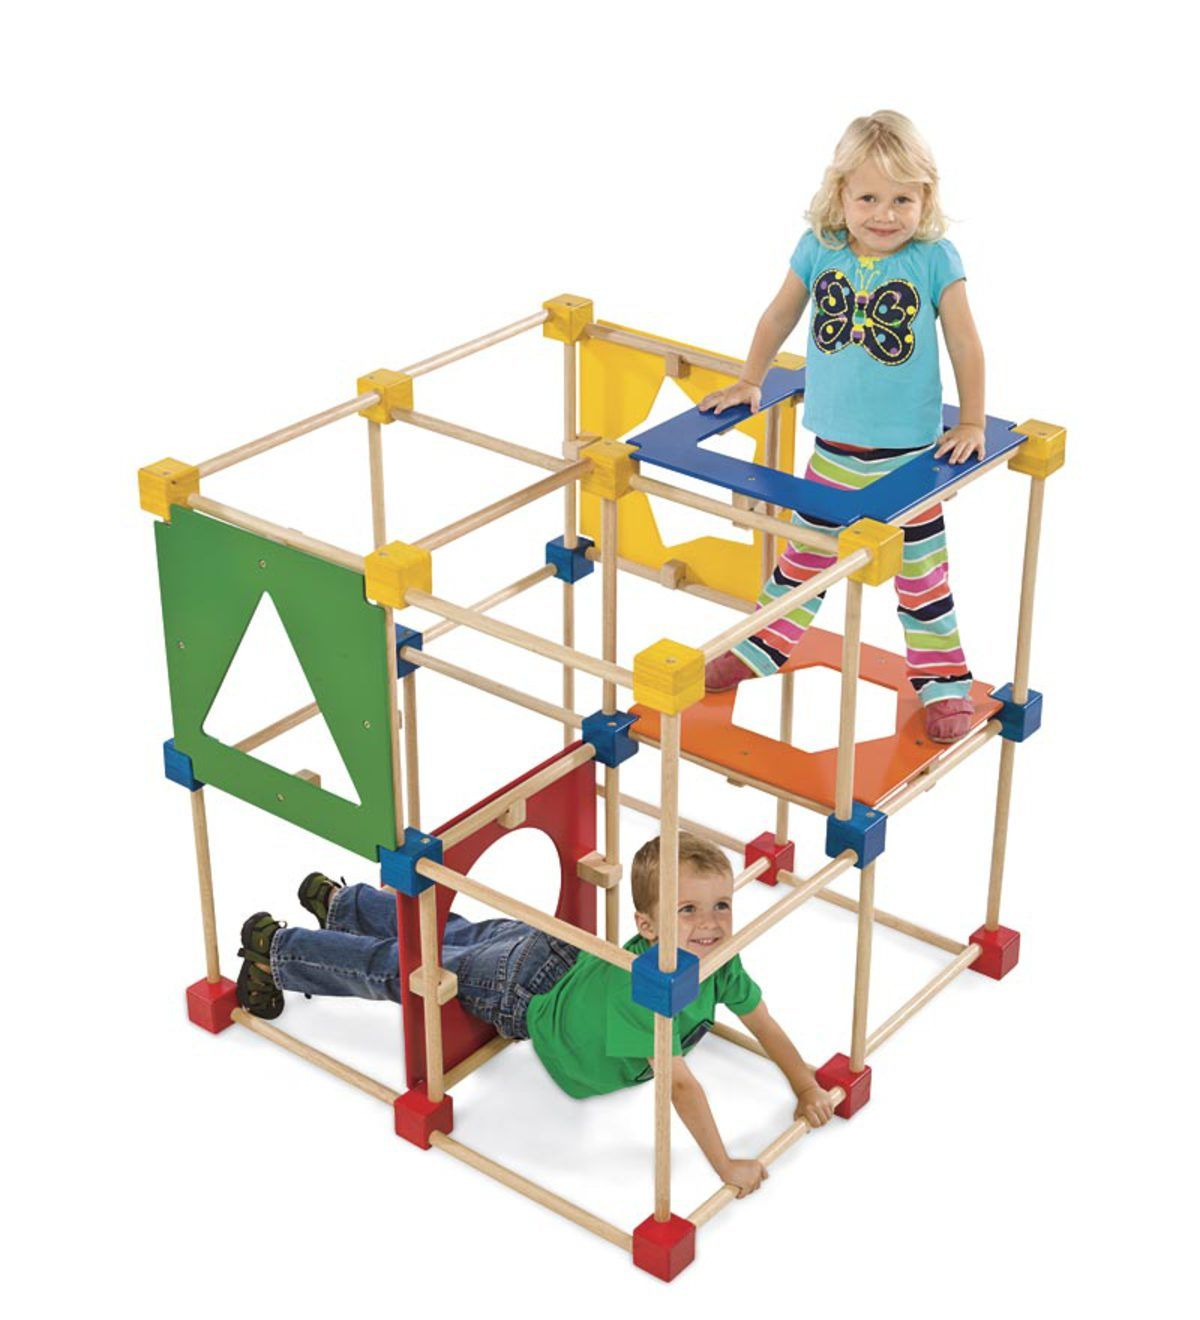 Toddler children kids indoor outdoor different variety of playing toys